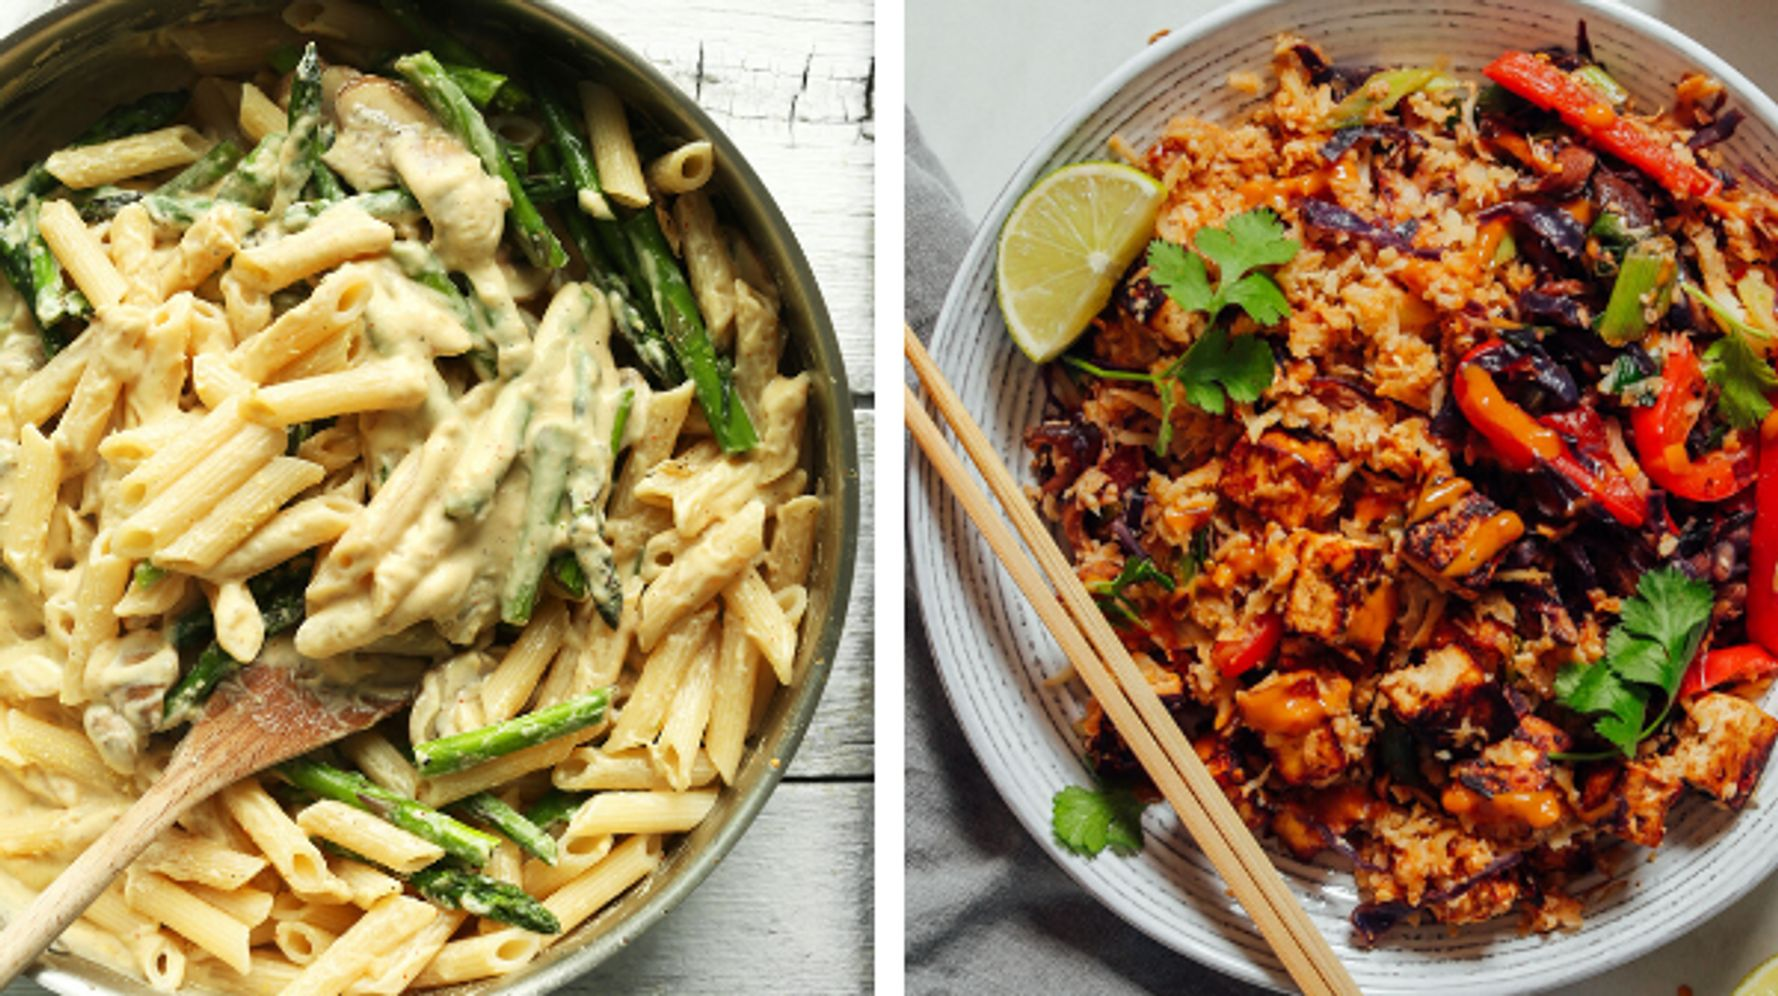 33 Easy Vegan Dinner Recipes You'll Fall In Love With photo